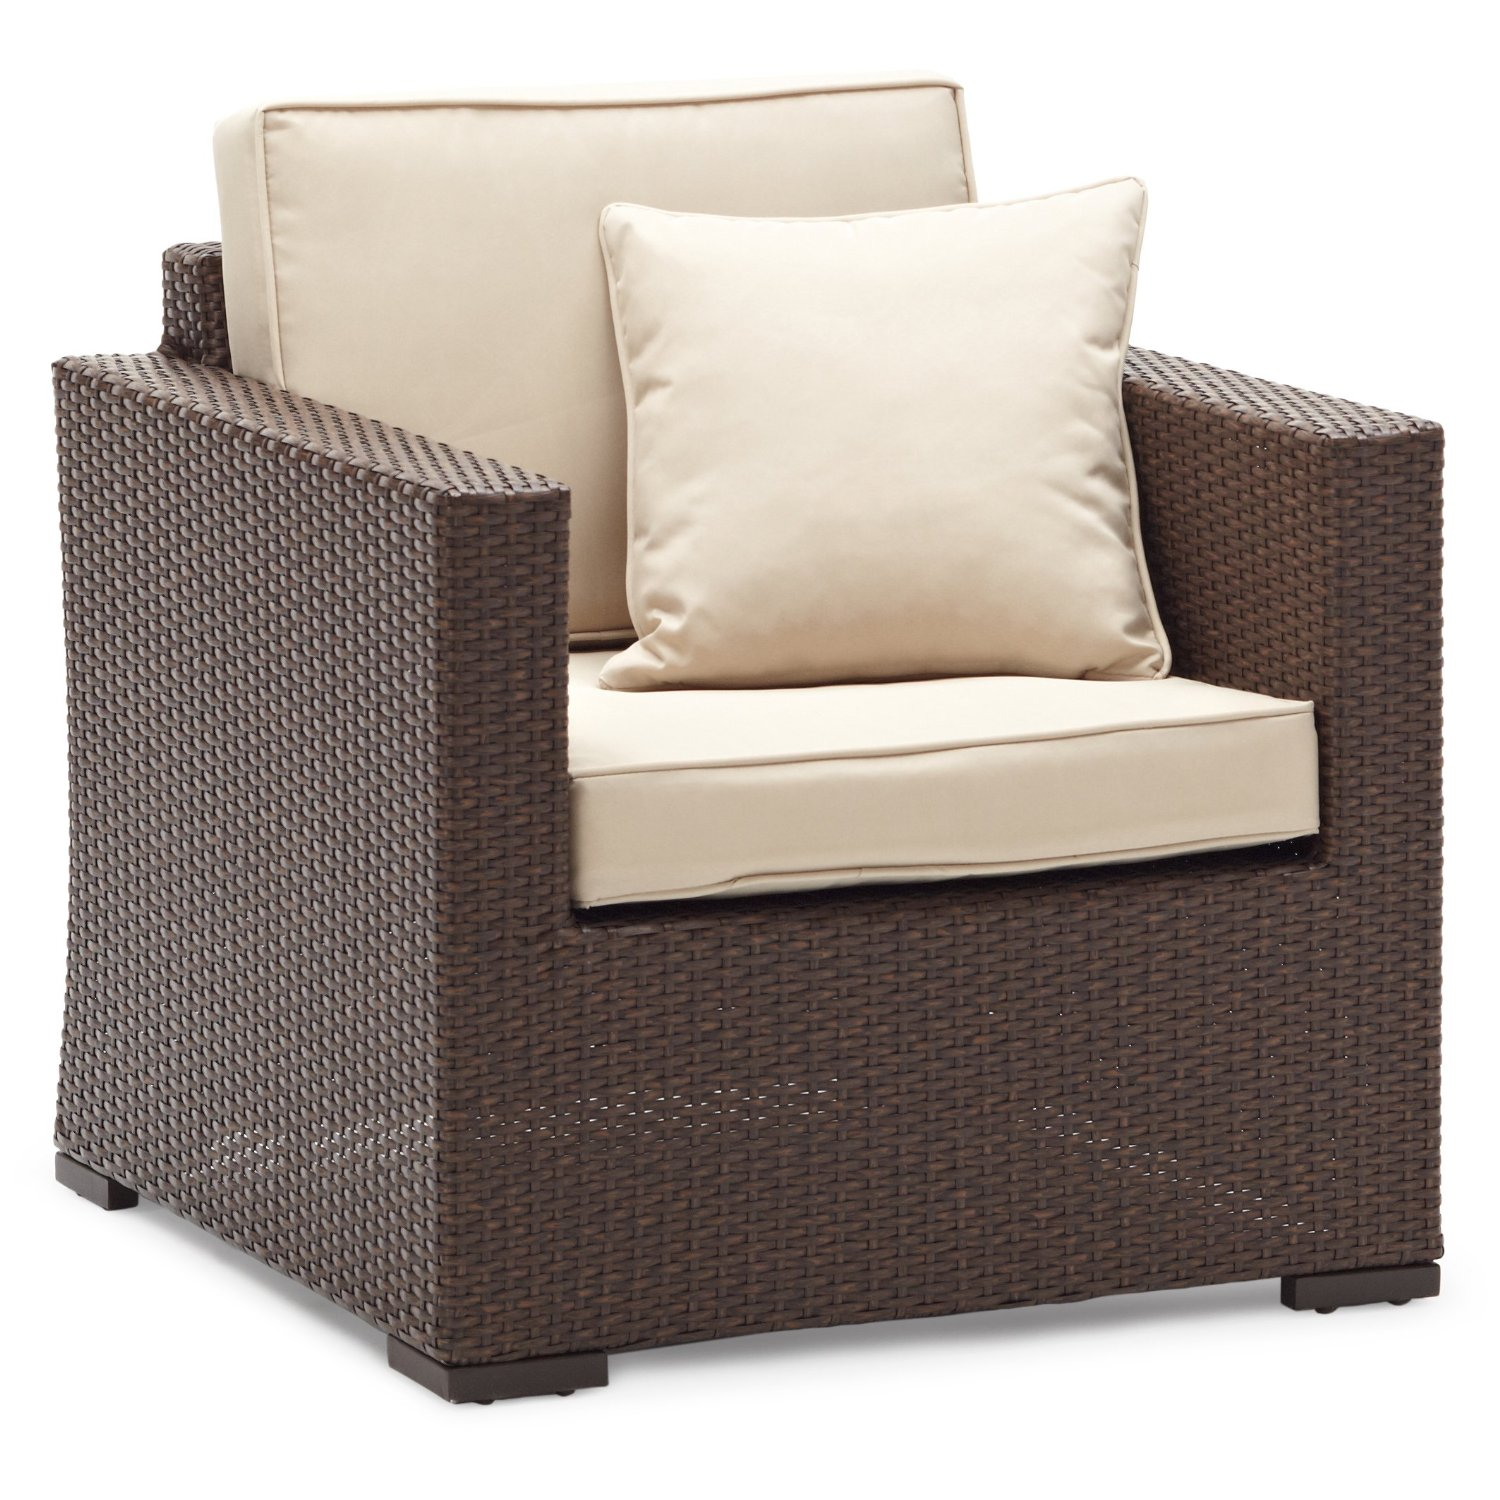 Strathwood Griffen All Weather Wicker Chair Dark Brown